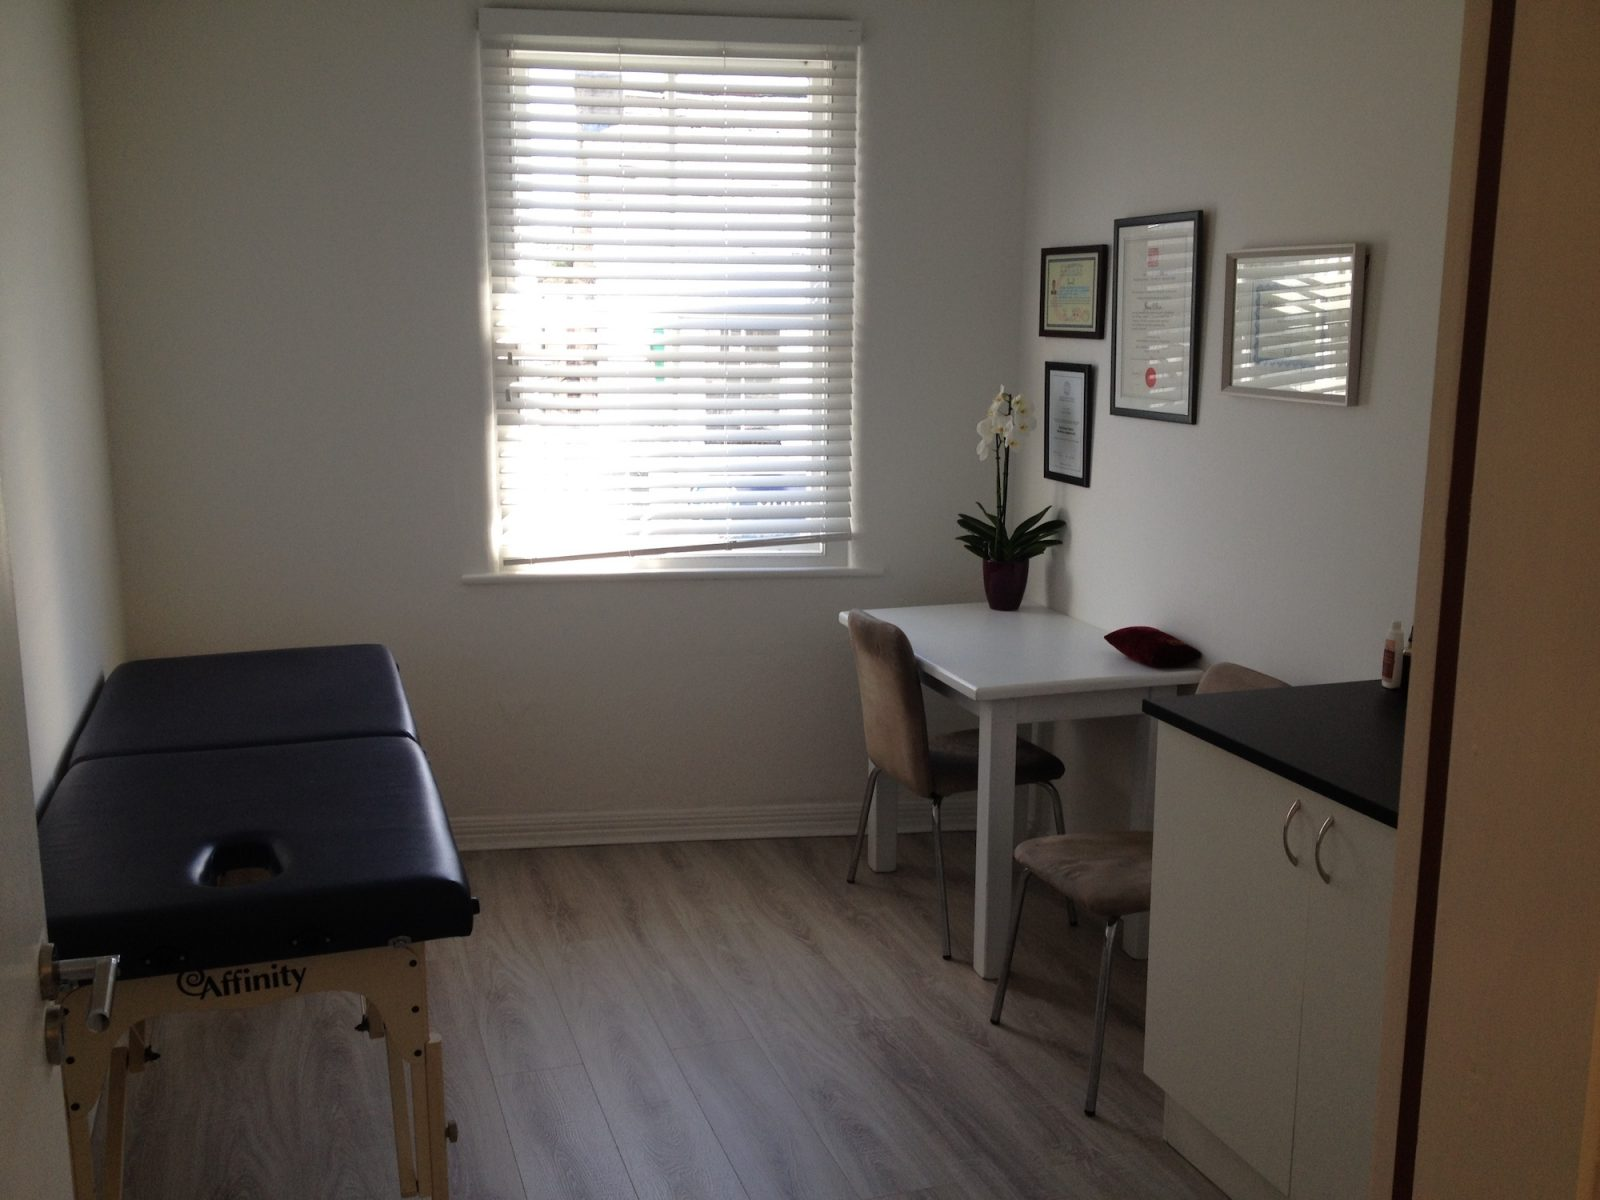 One of the treatment rooms at the Sligo Wellness Centre